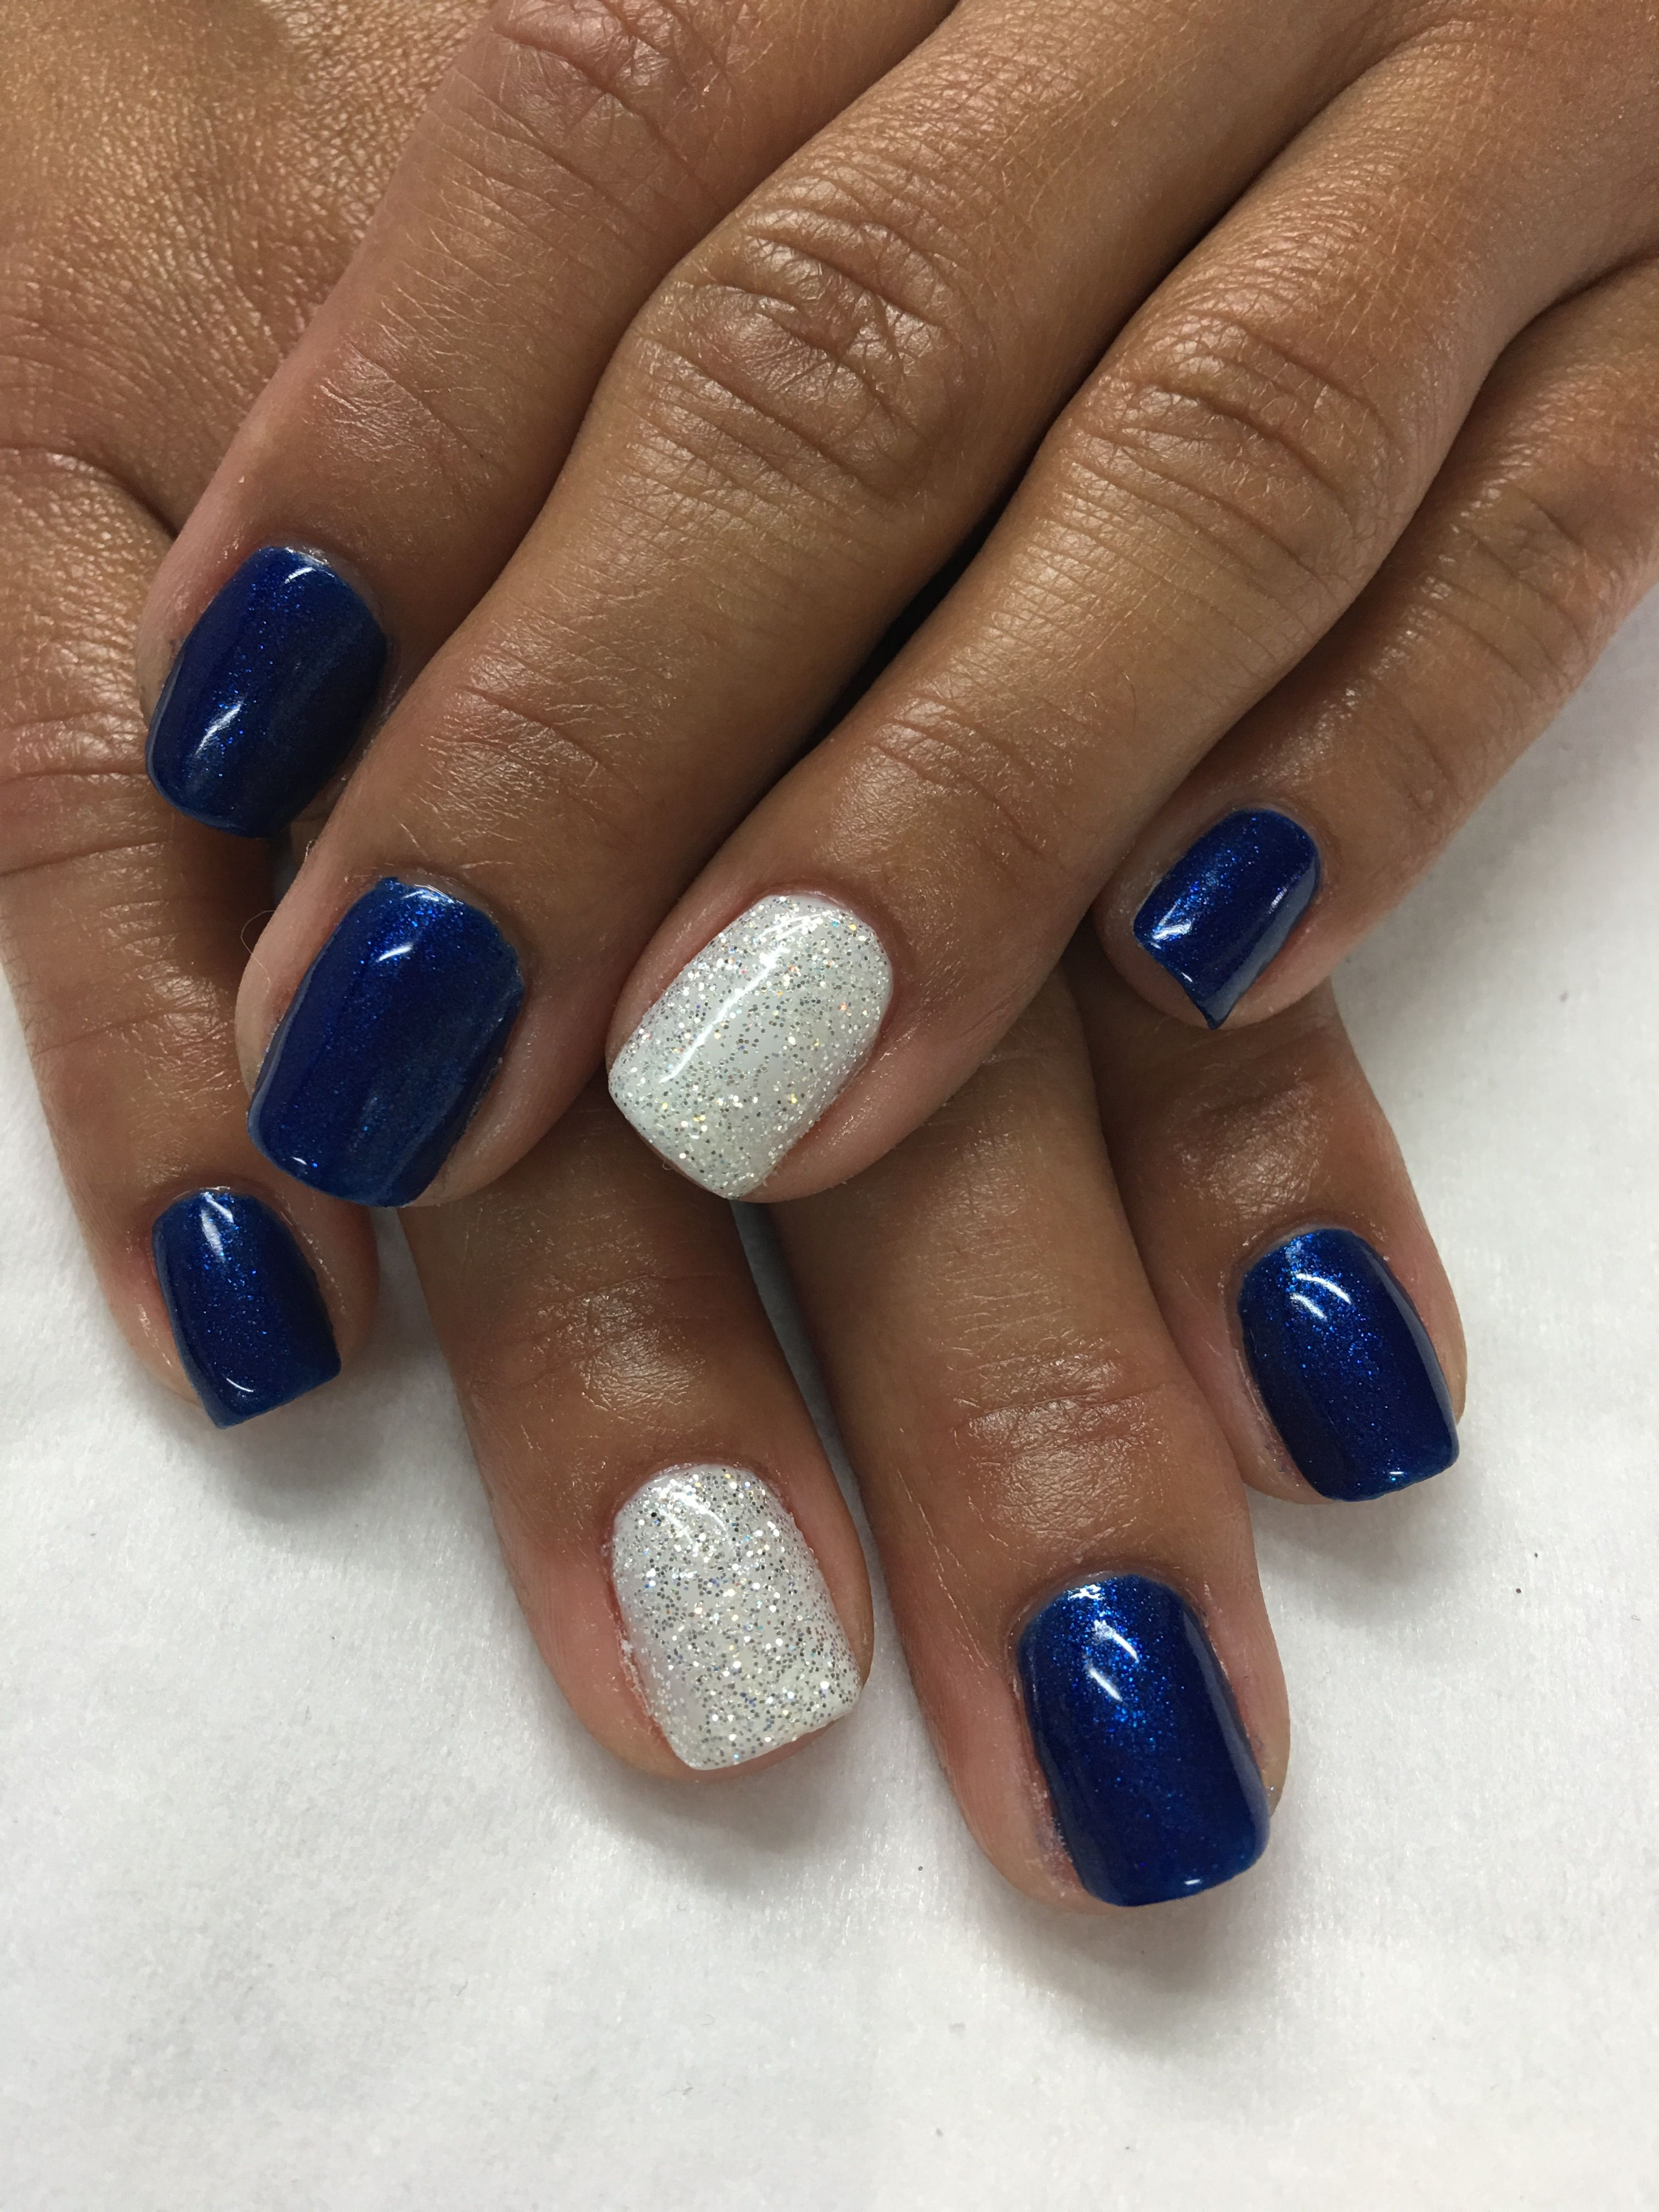 Royal Blue And White Glitter Gel Nails Blue And Silver Nails Glitter Gel Nails Gel Nails